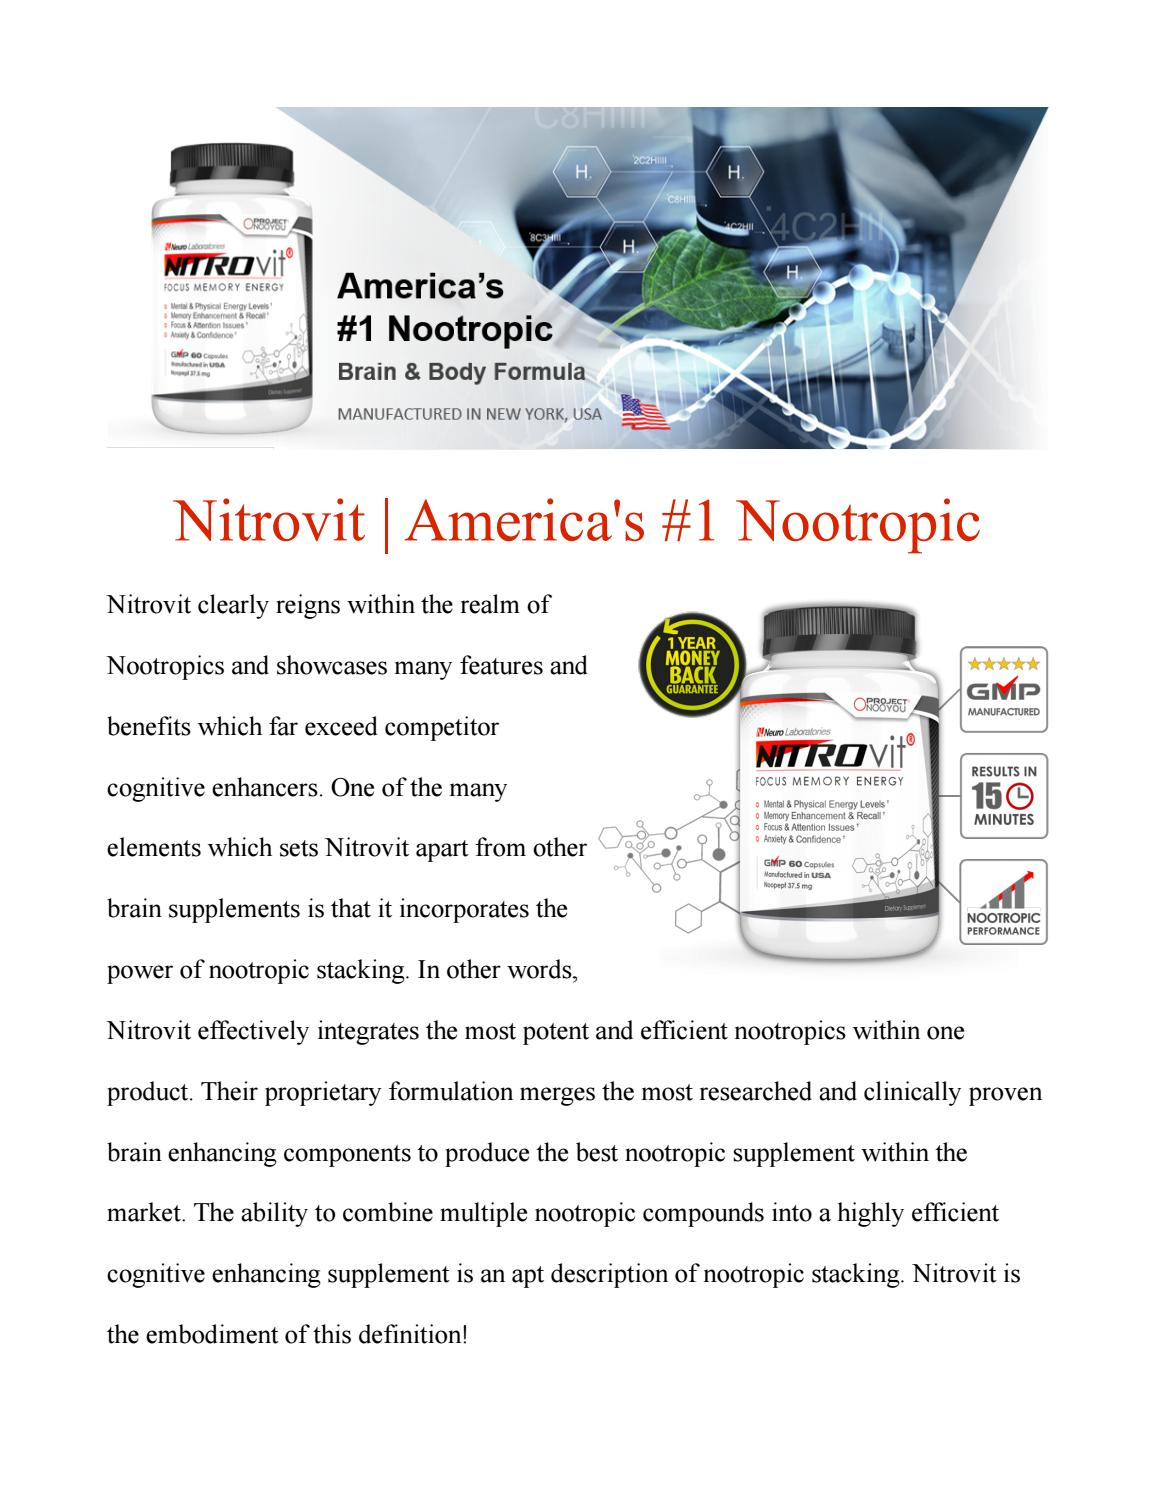 Sante Cognitive Enhancers Supplements Nootro Magazine Www